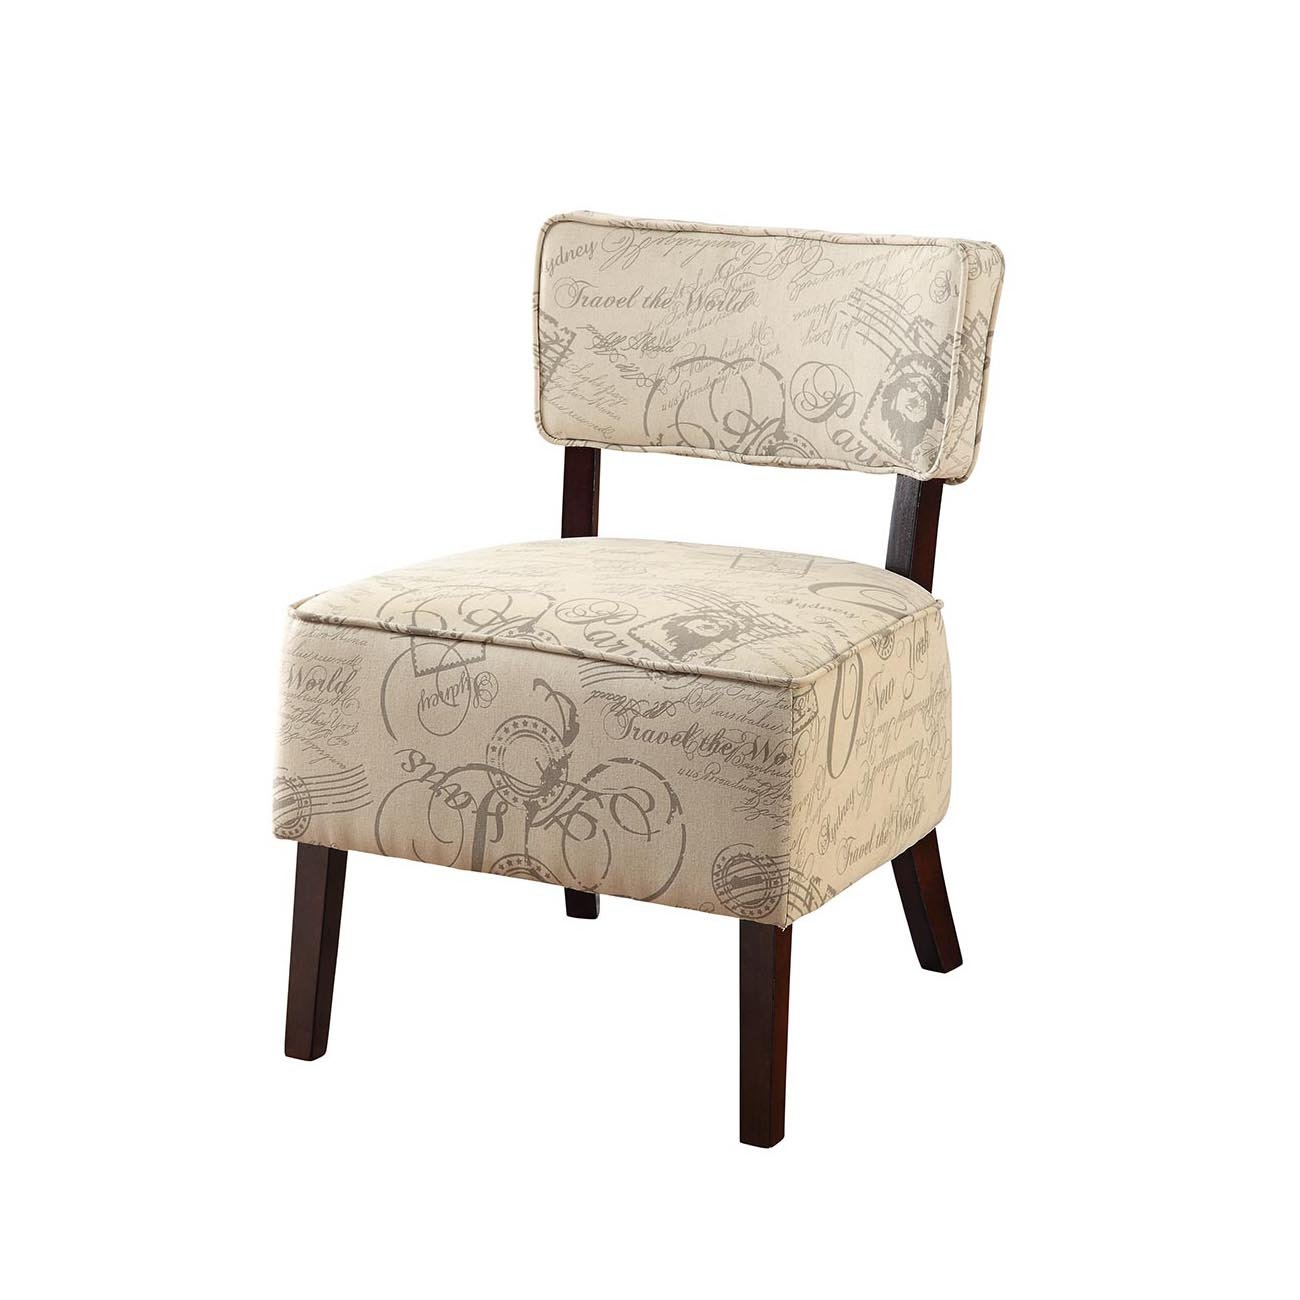 Furniture of America Jeuno Contemporary Accent Chair, Ivory